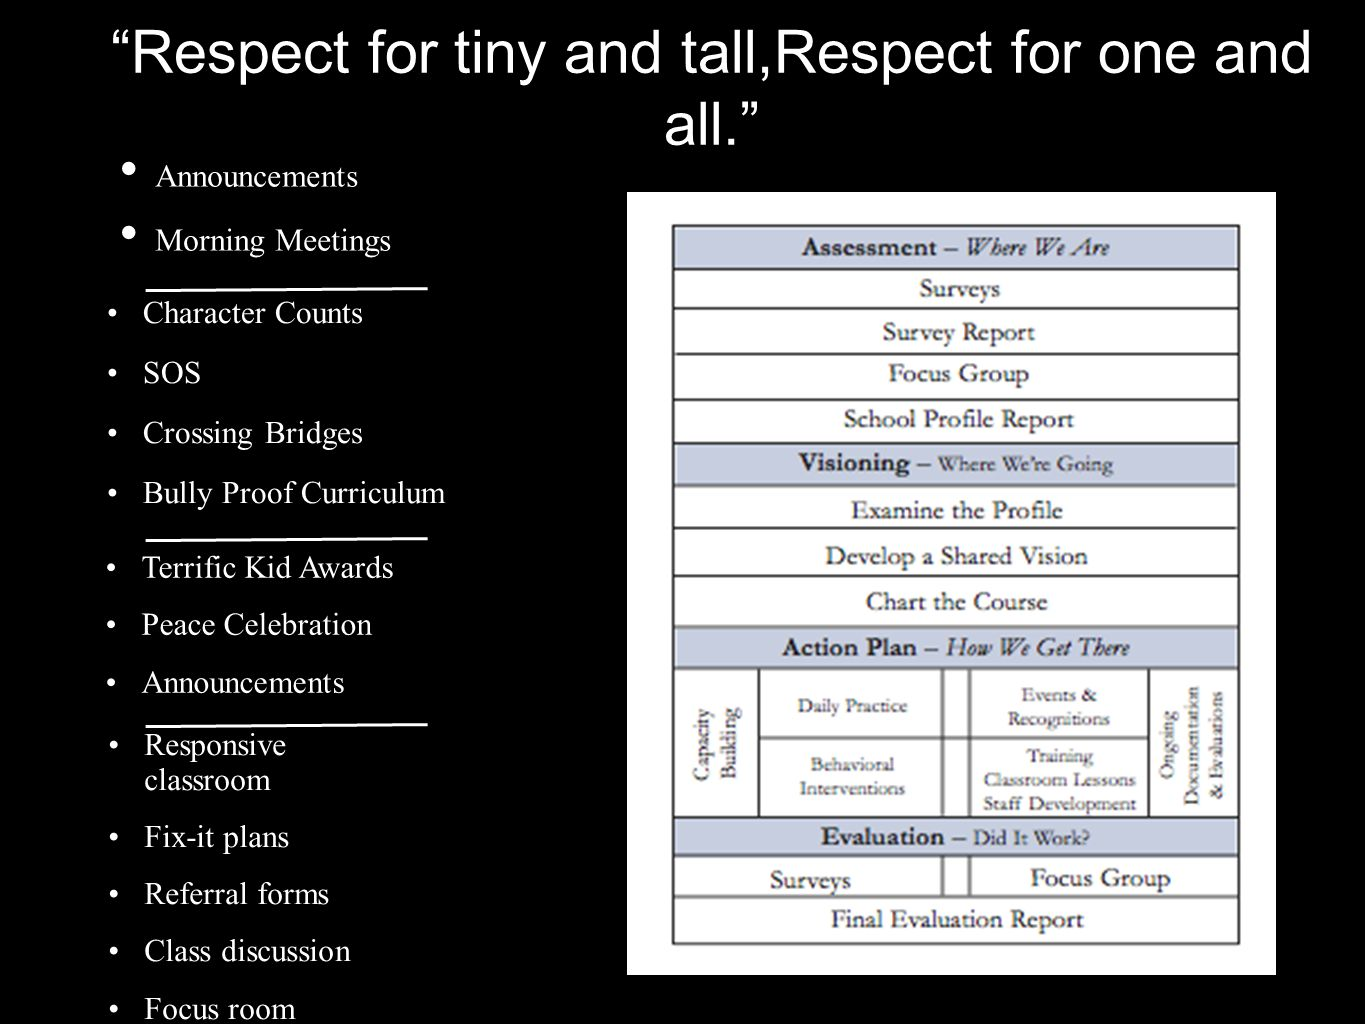 Respect for tiny and tall,Respect for one and all.